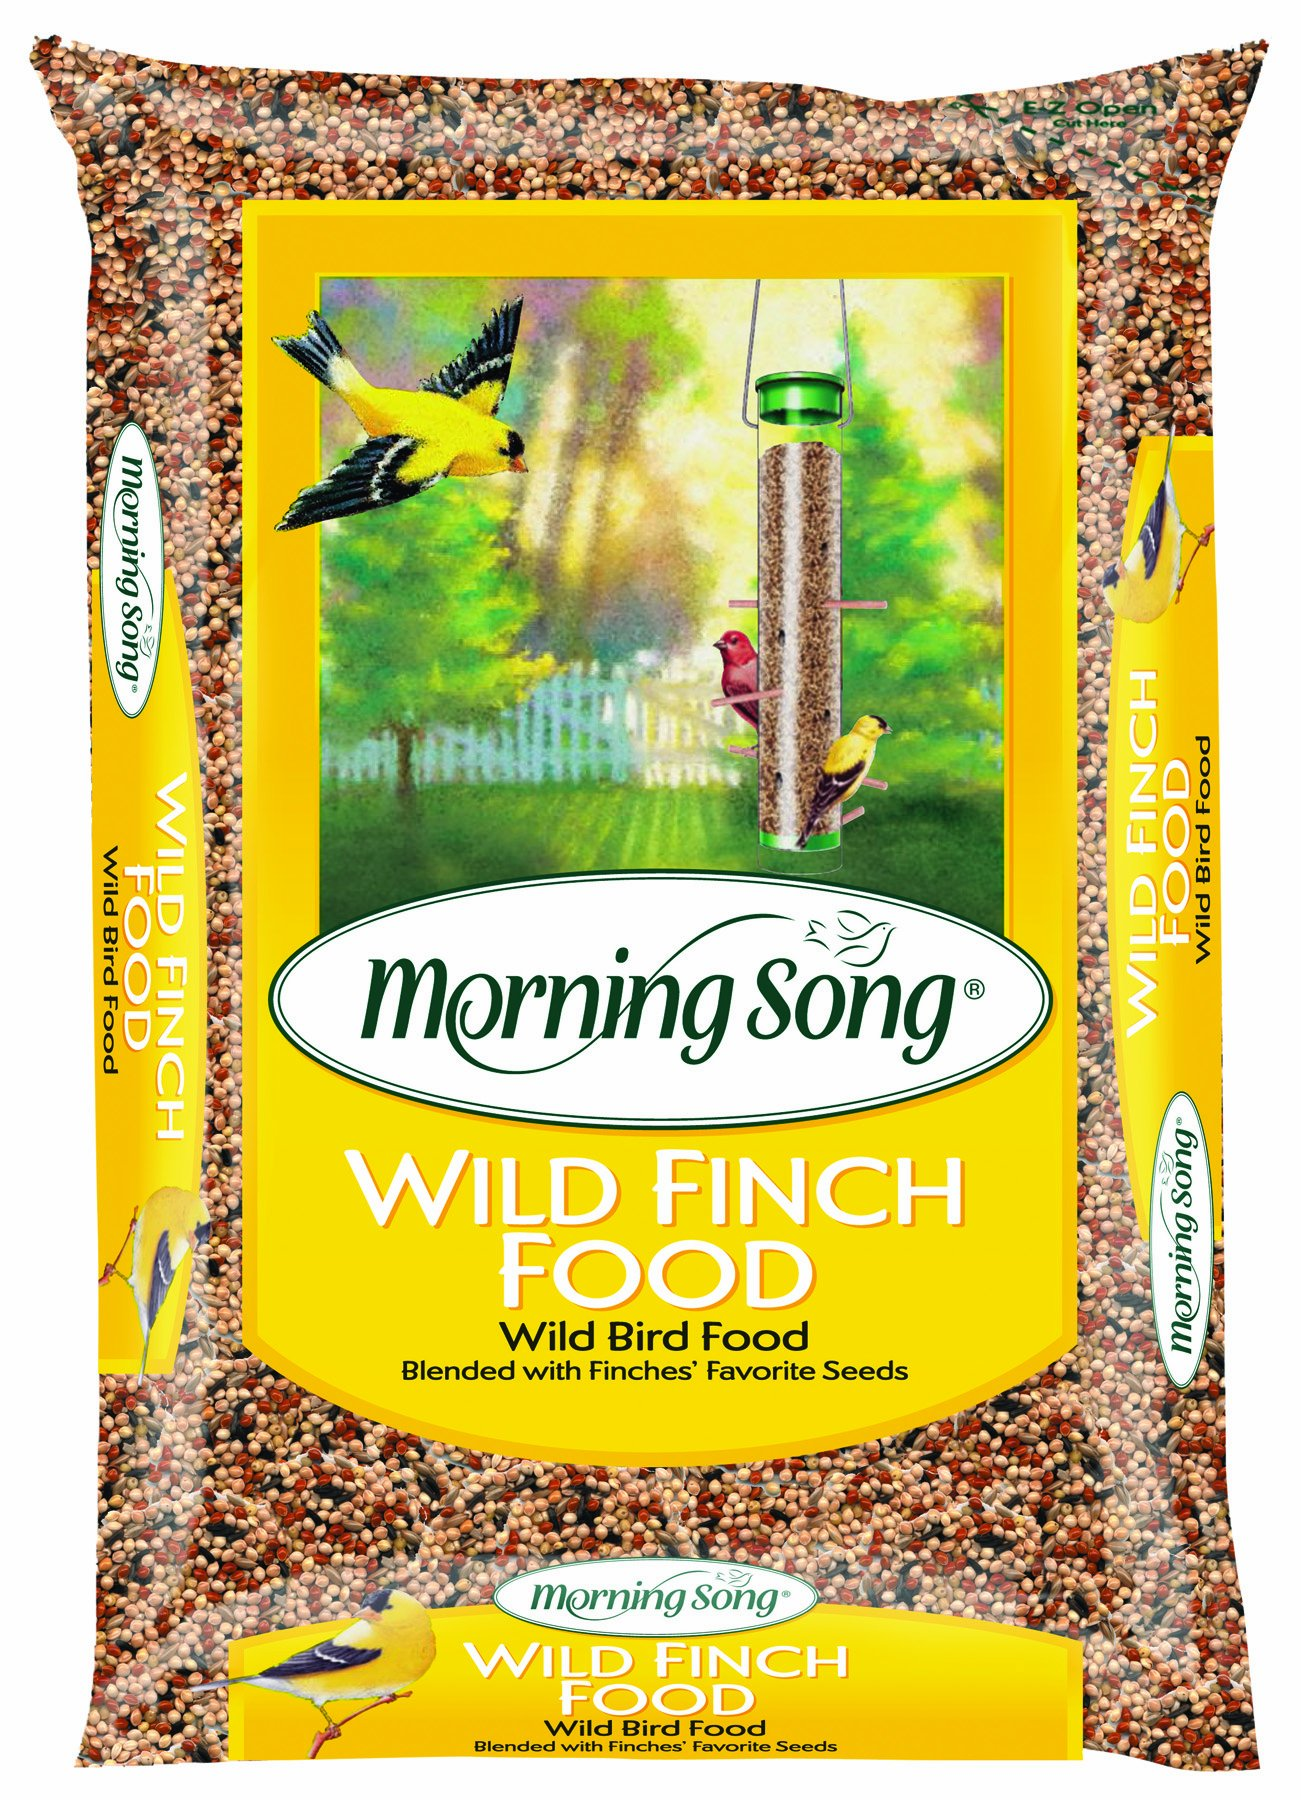 Morning Song 12005 Wild Finch Wild Bird Food Bag, 8-Pound by Morning Song